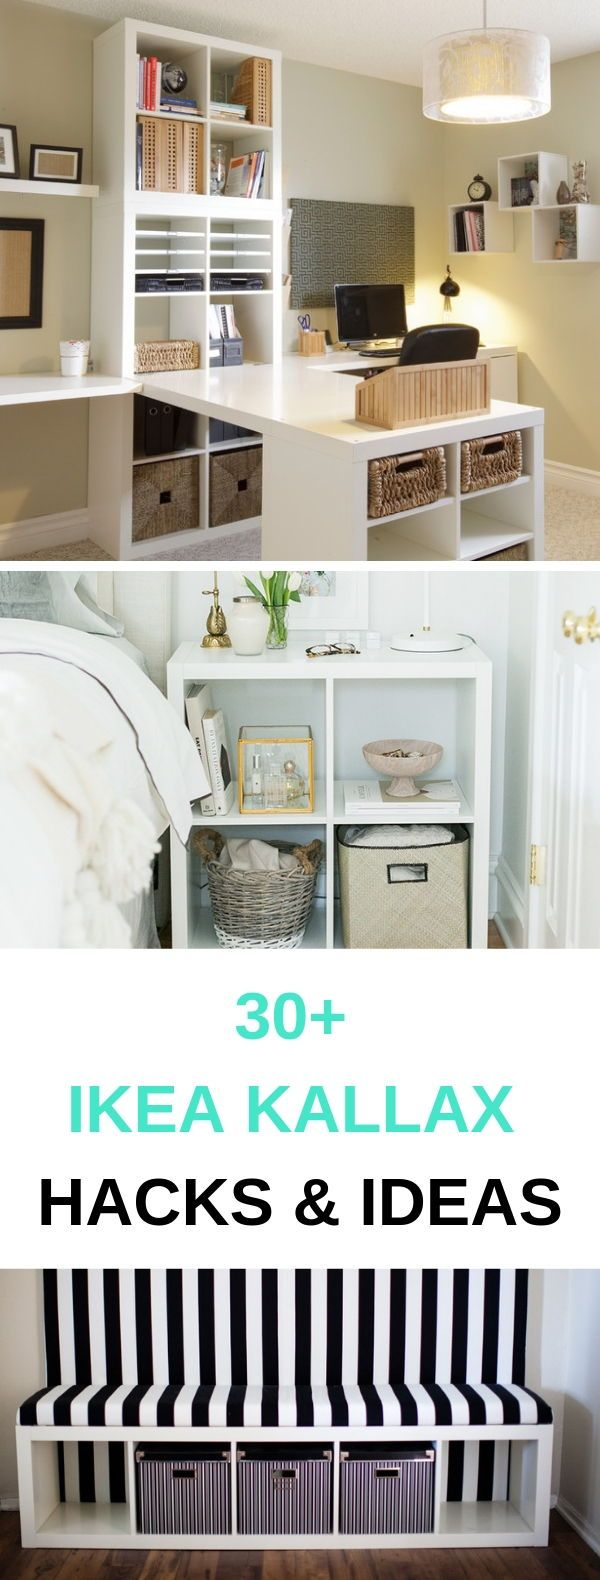 30+ Ikea Kallax Inspiration, Ideas & Hacks For Every Room #ikeaideen